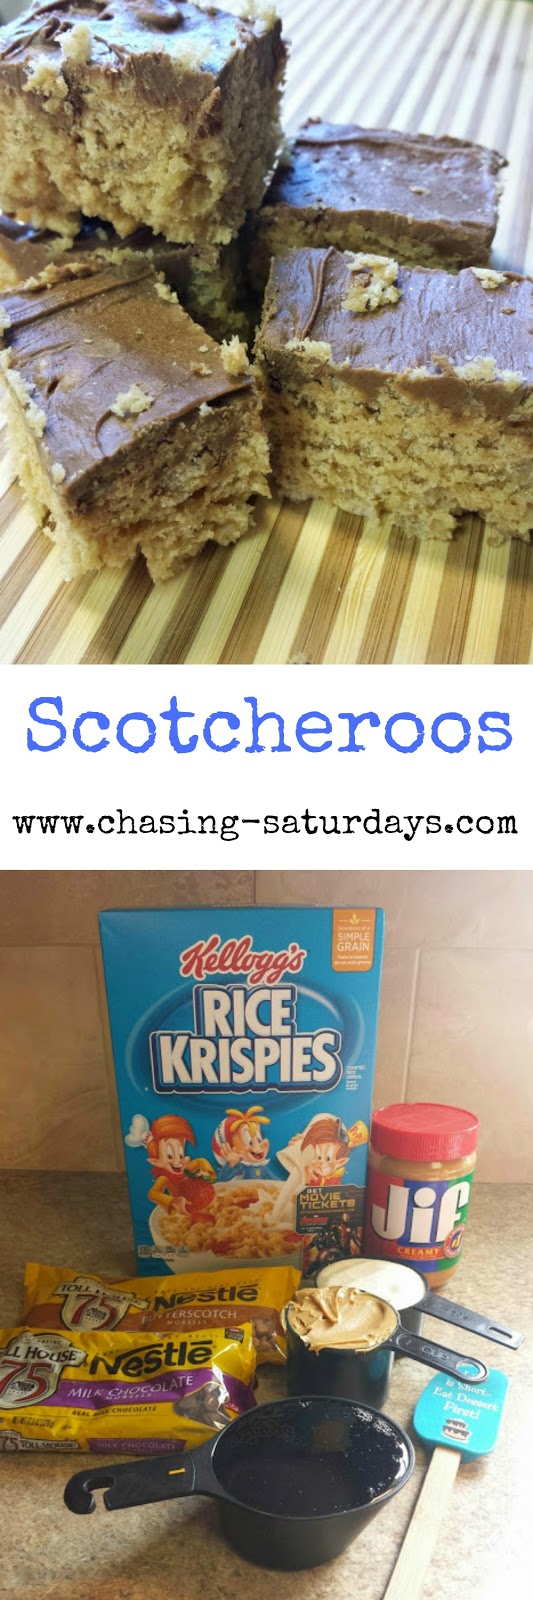 Scotcheroos is a gooey, rice krispy treat with peanut butter, chocolate, and butterscotch!  Chasing Saturday's